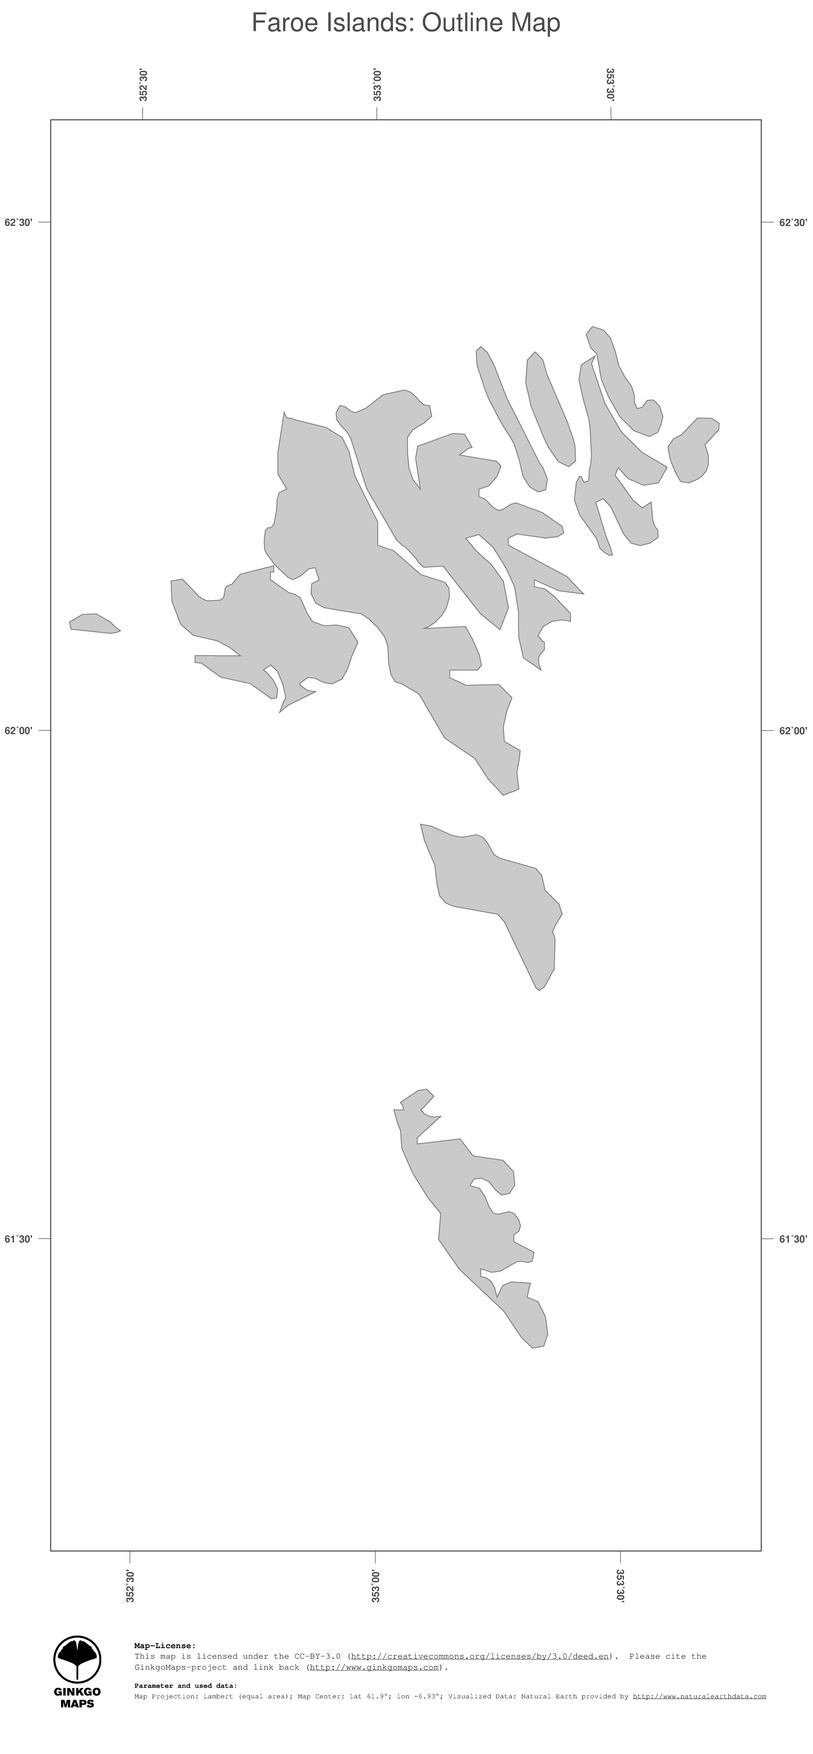 map faroe islands ginkgomaps continent europe region faroe islands -  map faroe islands political country borders (outline map)